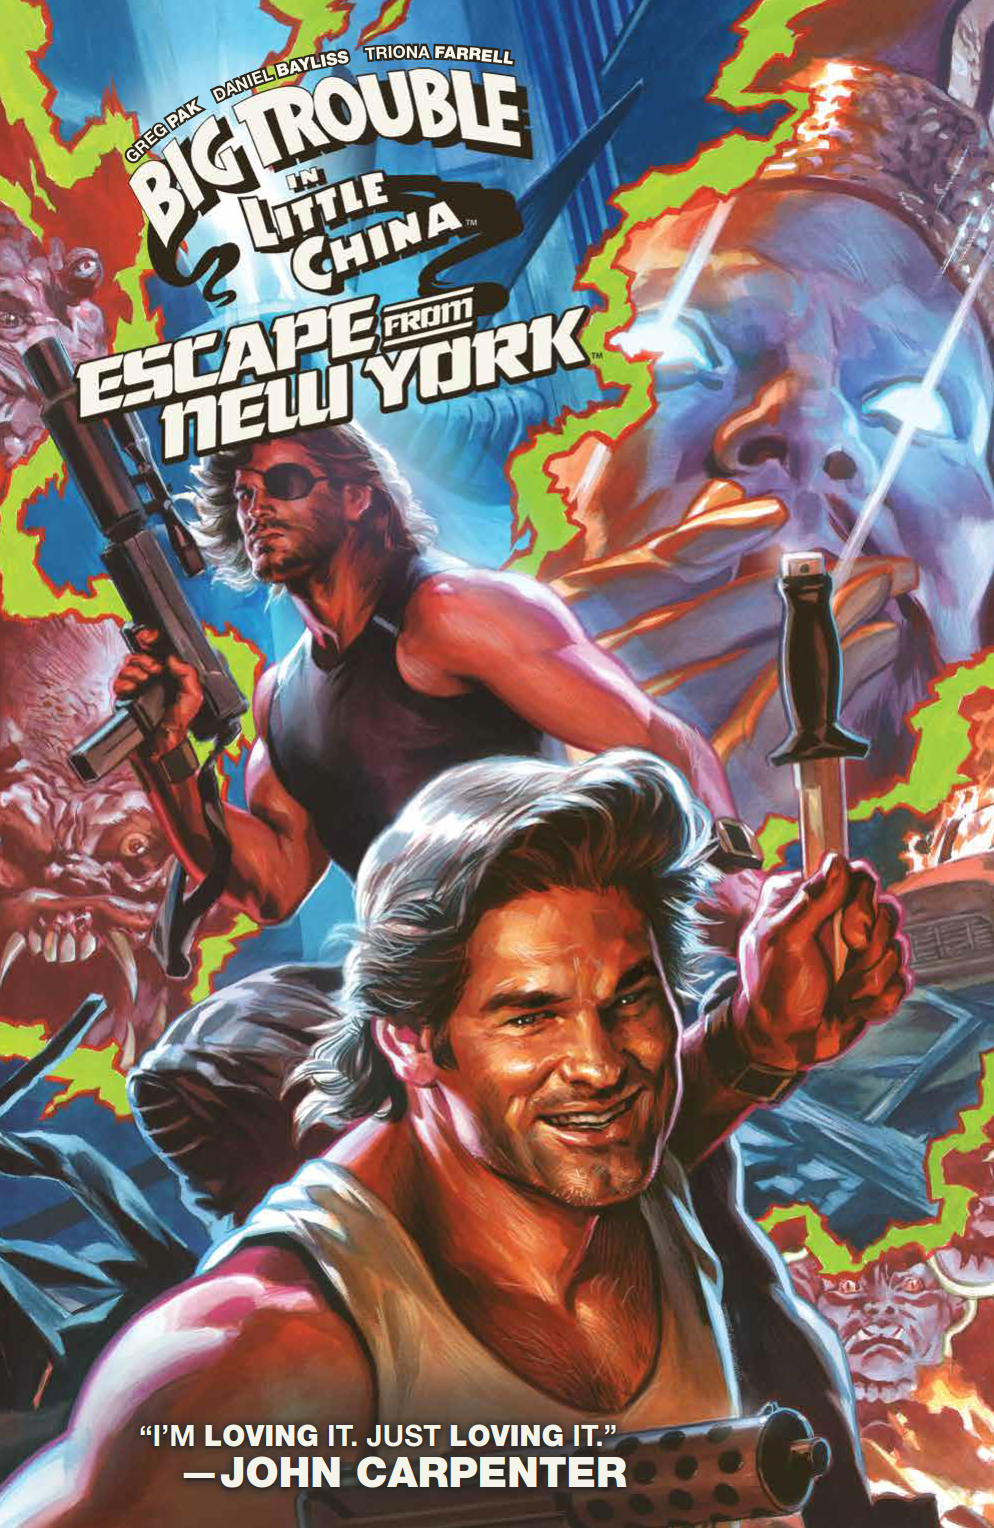 BIG TROUBLE IN LITTLE CHINA & ESCAPE FROM NEW YORK TP